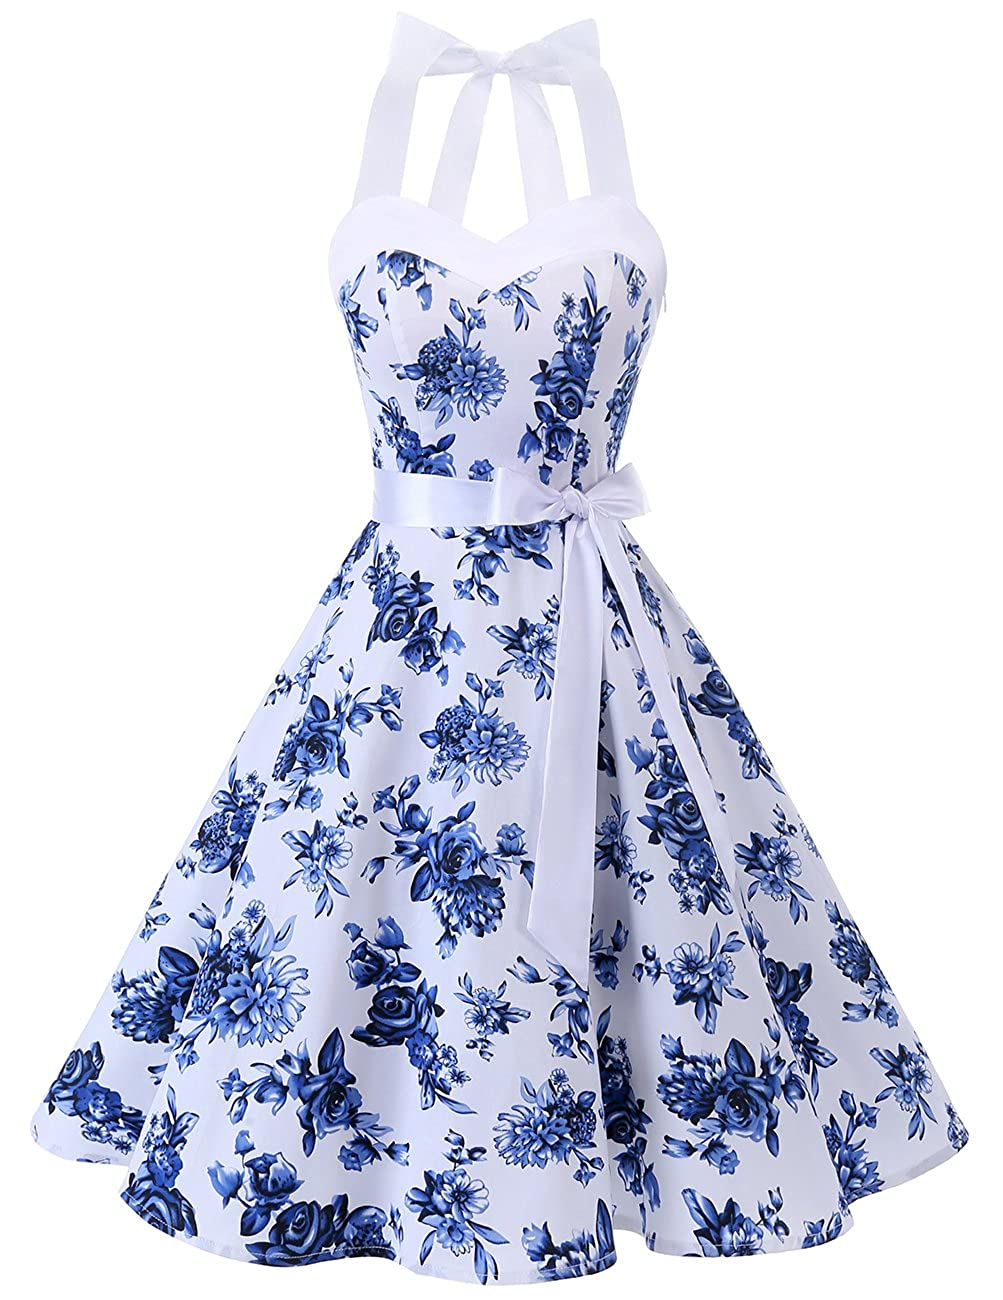 TALLA XL. Dresstells® Halter 50s Rockabilly Polka Dots Audrey Dress Retro Cocktail Dress White Blue Flower XL